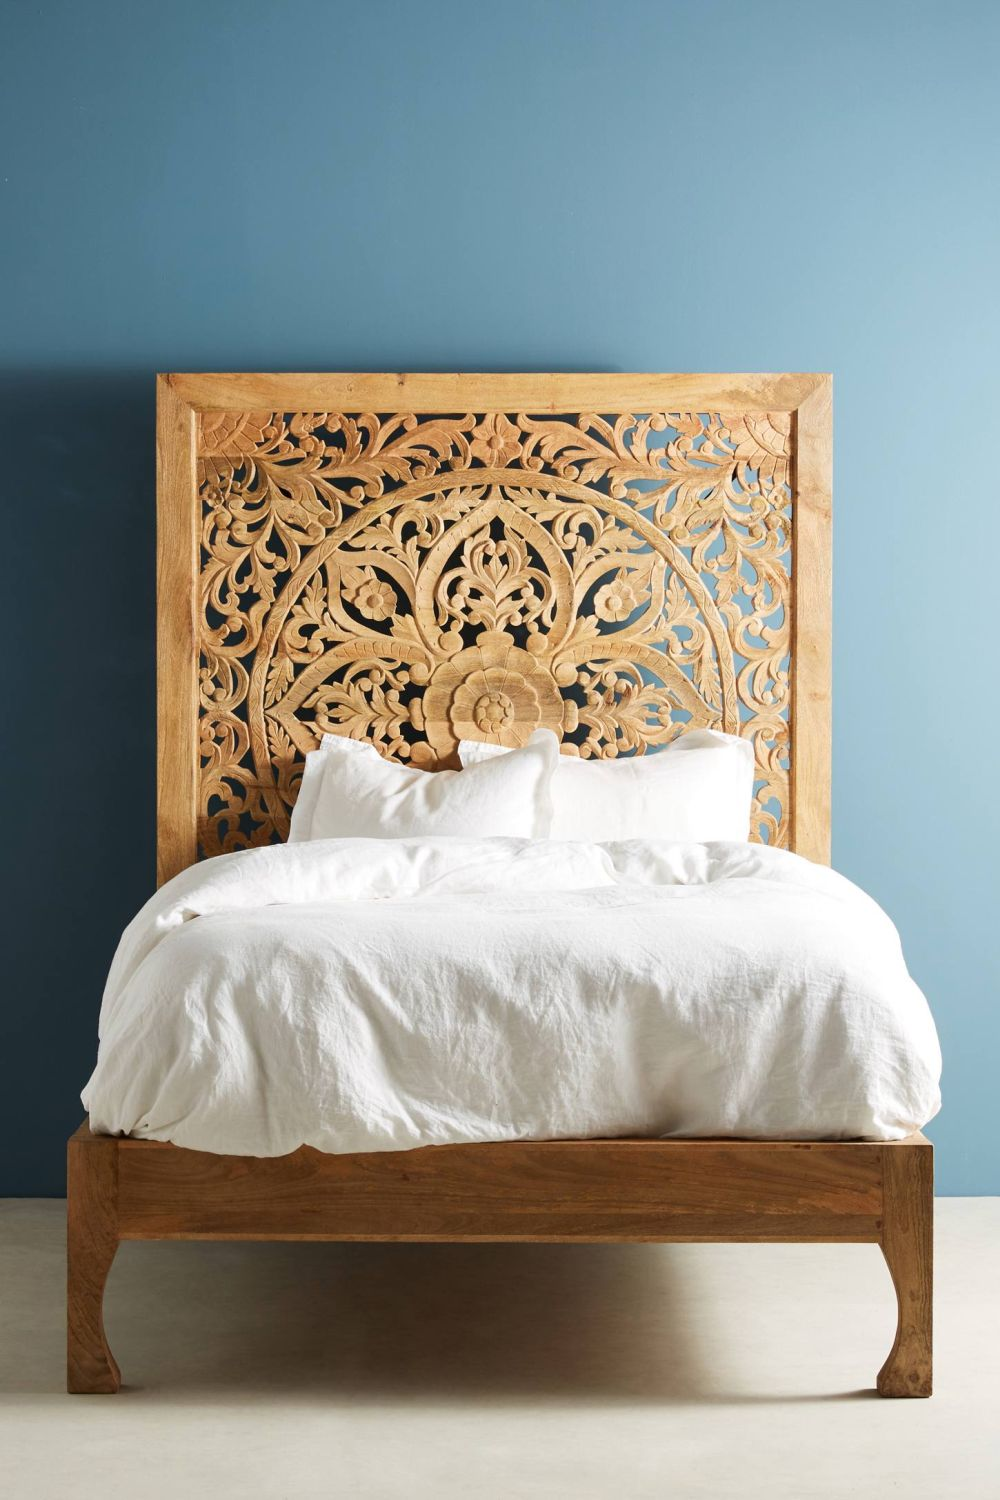 Boho bedroom with carved headboard